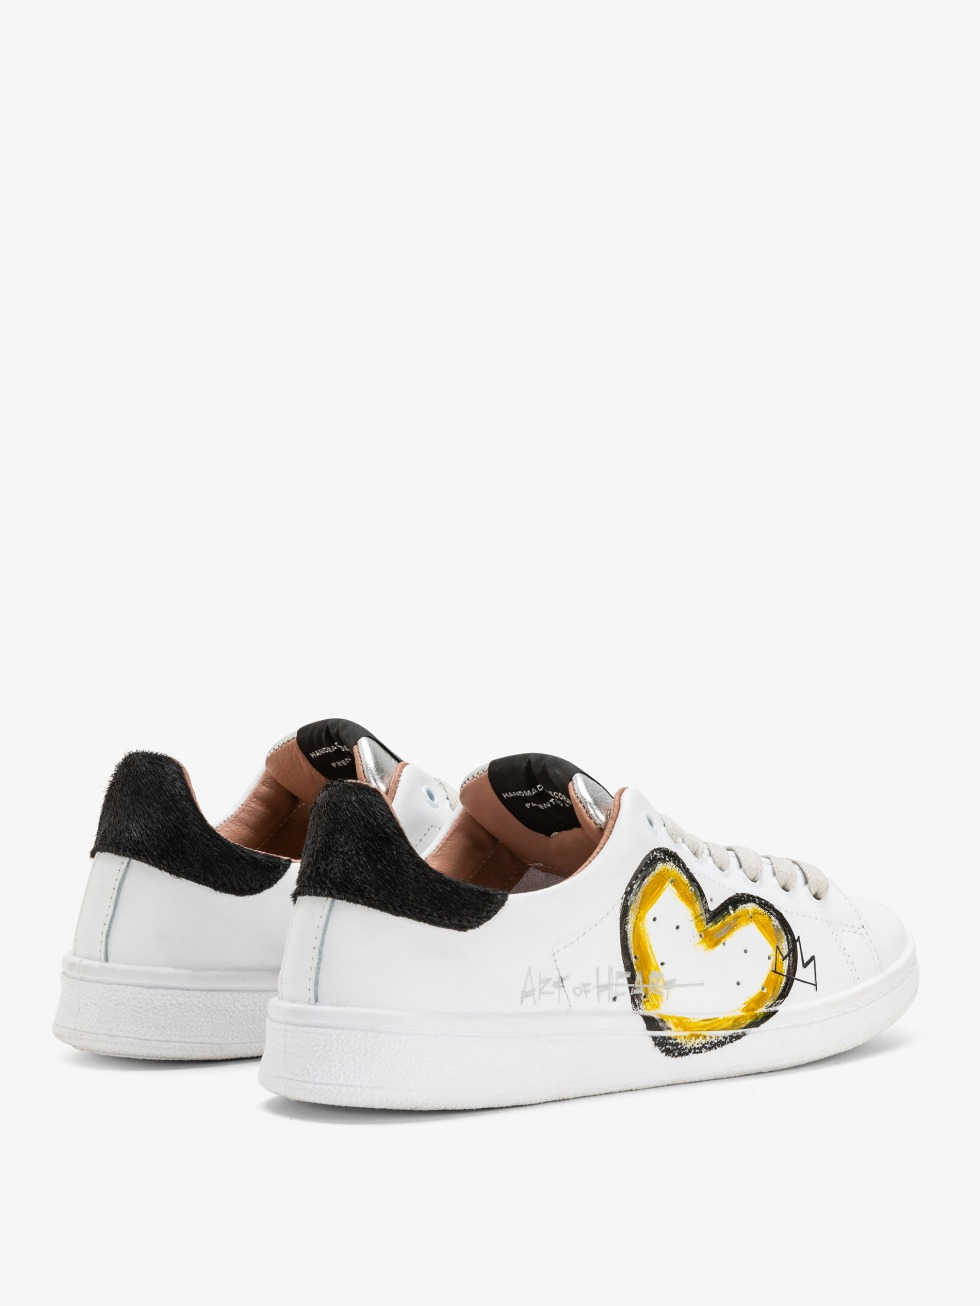 Daiquiri Sneakers - Black Art of Heart Yellow